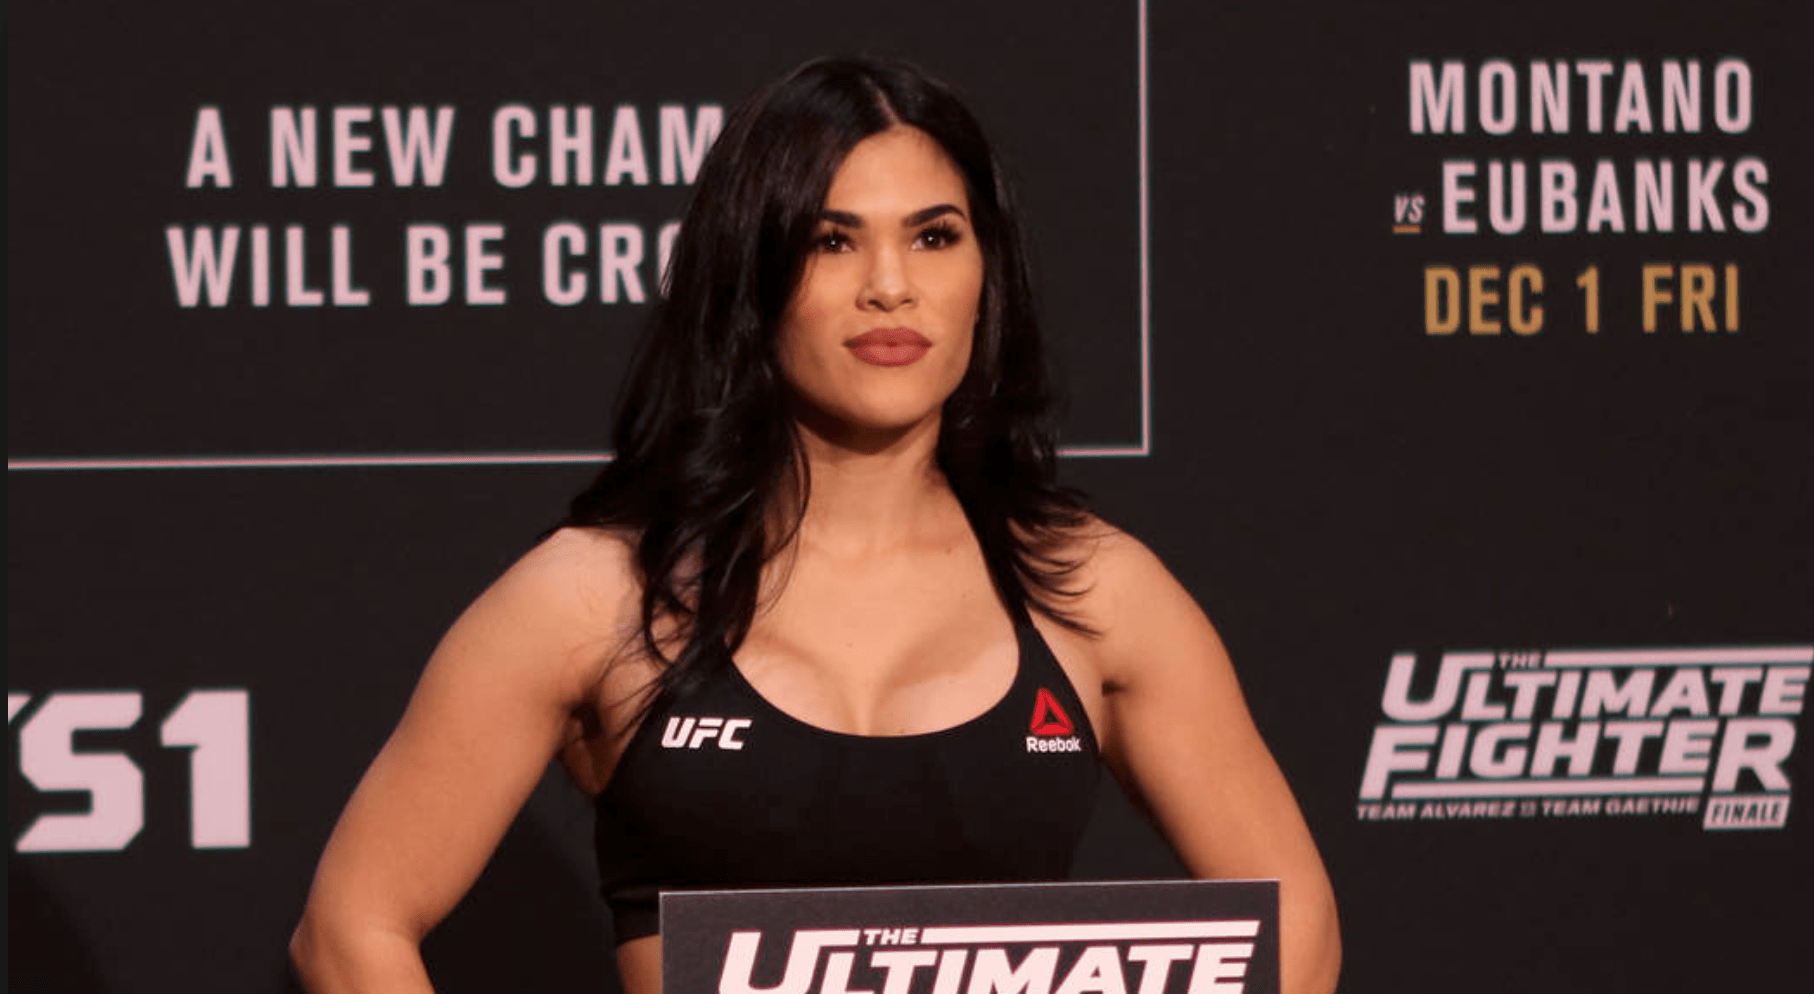 UFC: Rachael Ostovich Suspended By USADA